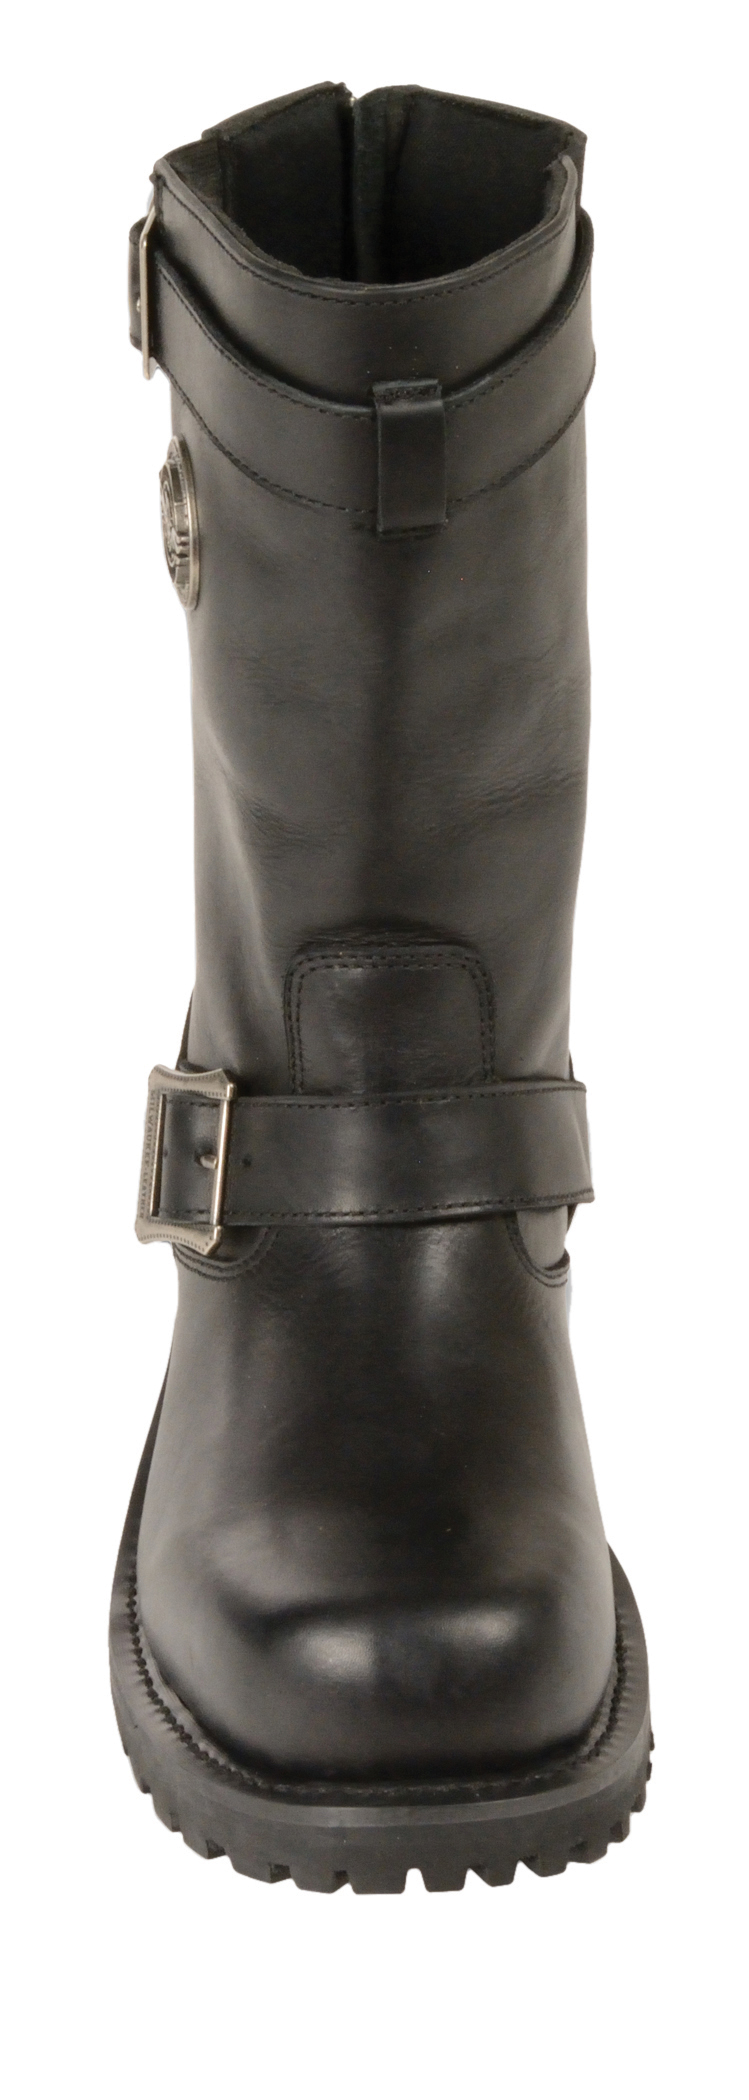 leather motorcycle boots waterproof